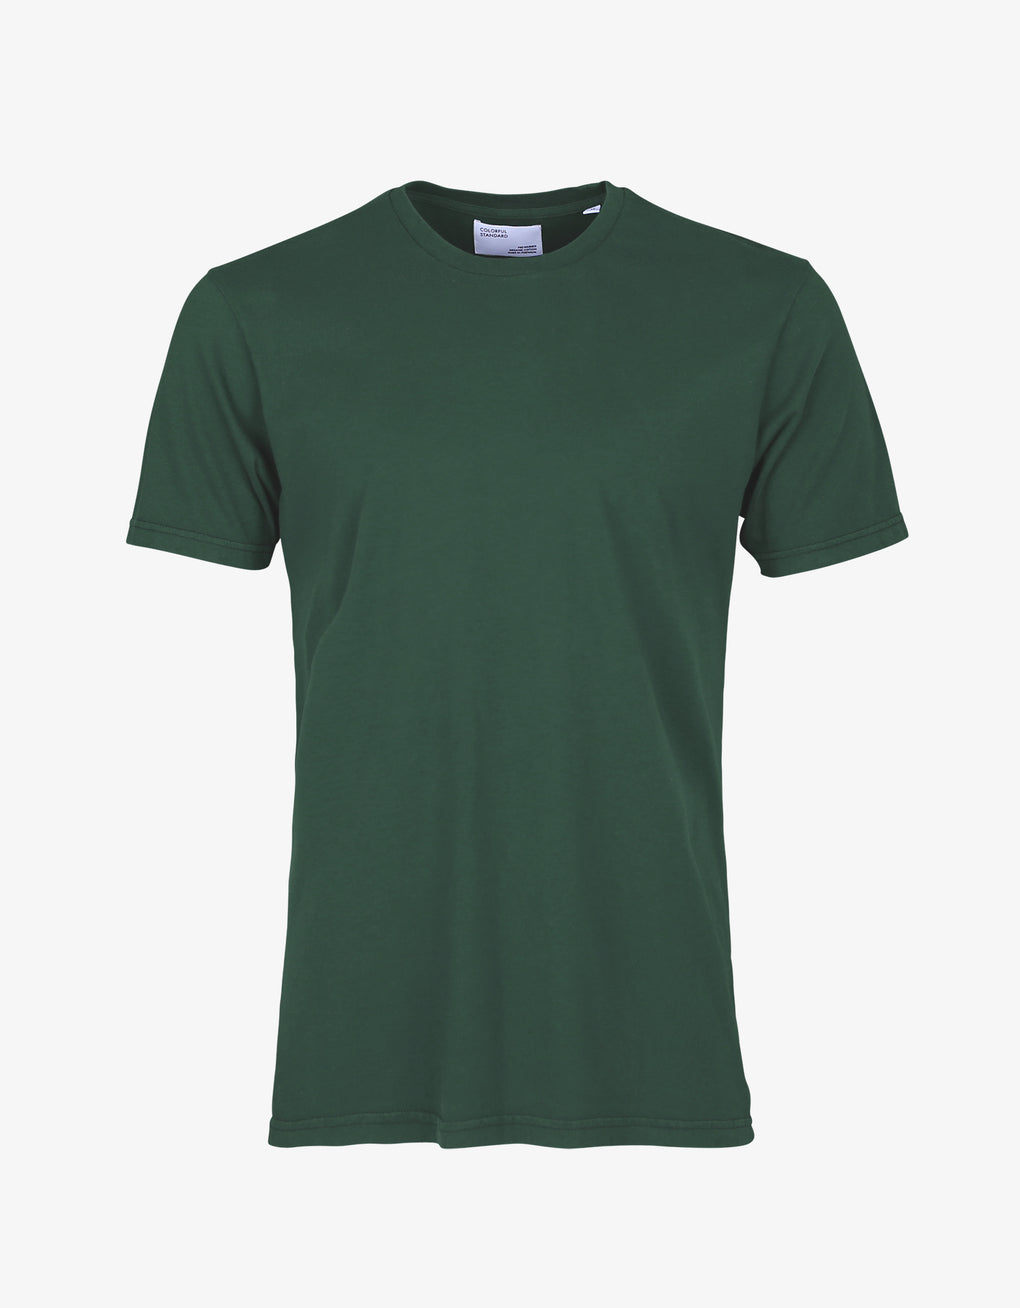 Colorful Standard Classic Organic Tee T-shirt Emerald Green